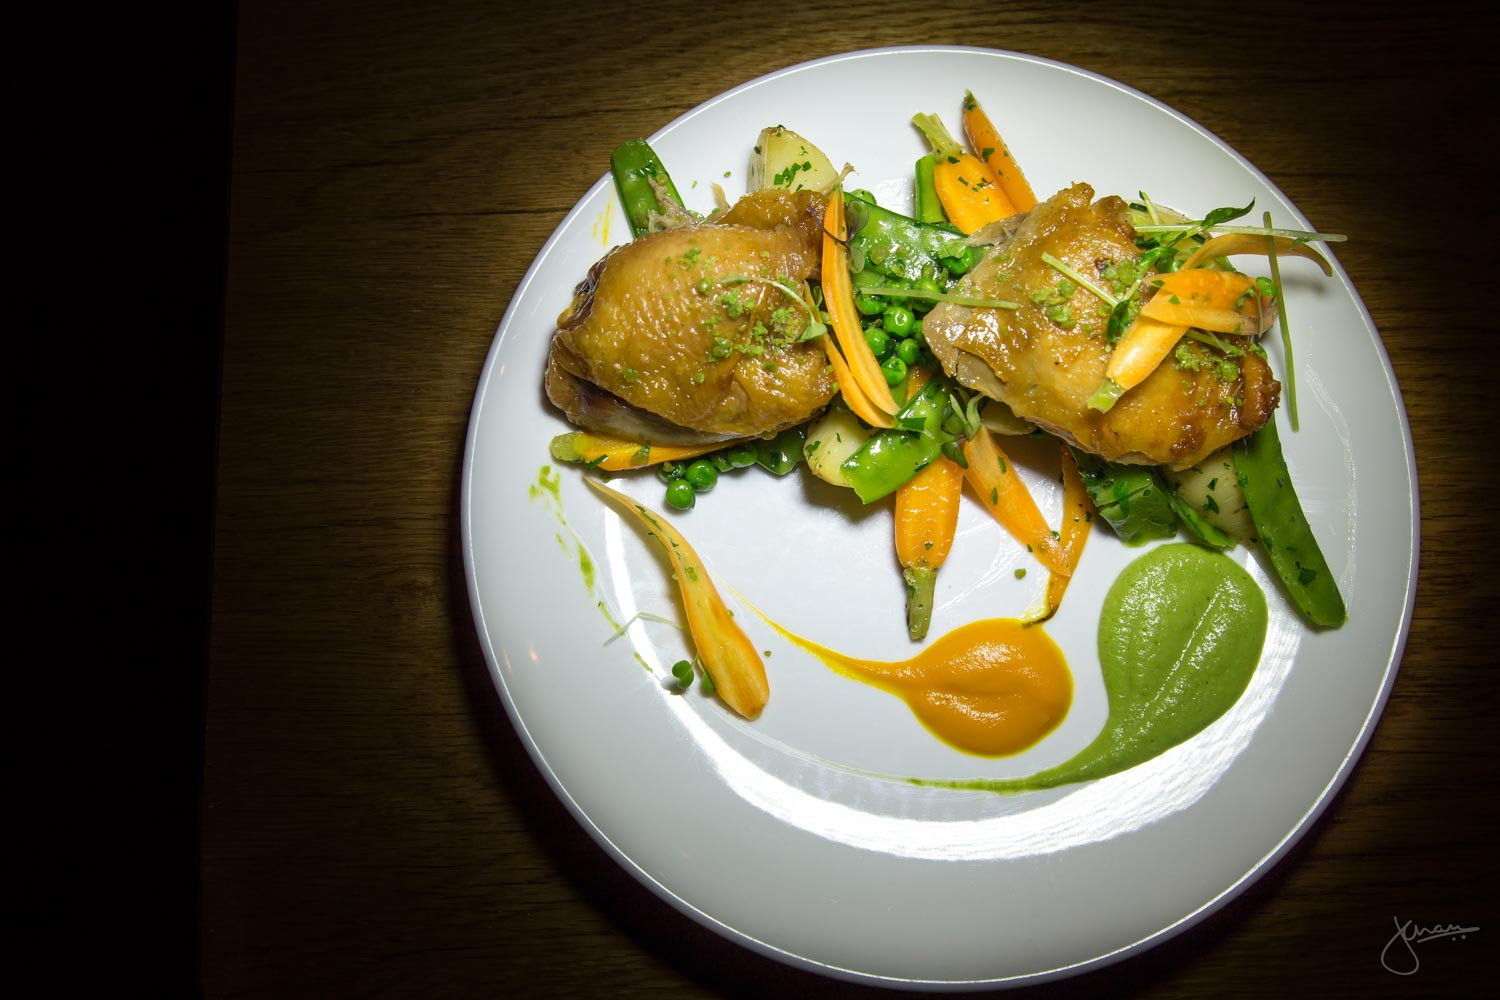 Maple Hill Farms Confit Chicken Thighs - Roasted new potatoes, glazed local baby carrots, english peas, snow peas & wasabi pea dust